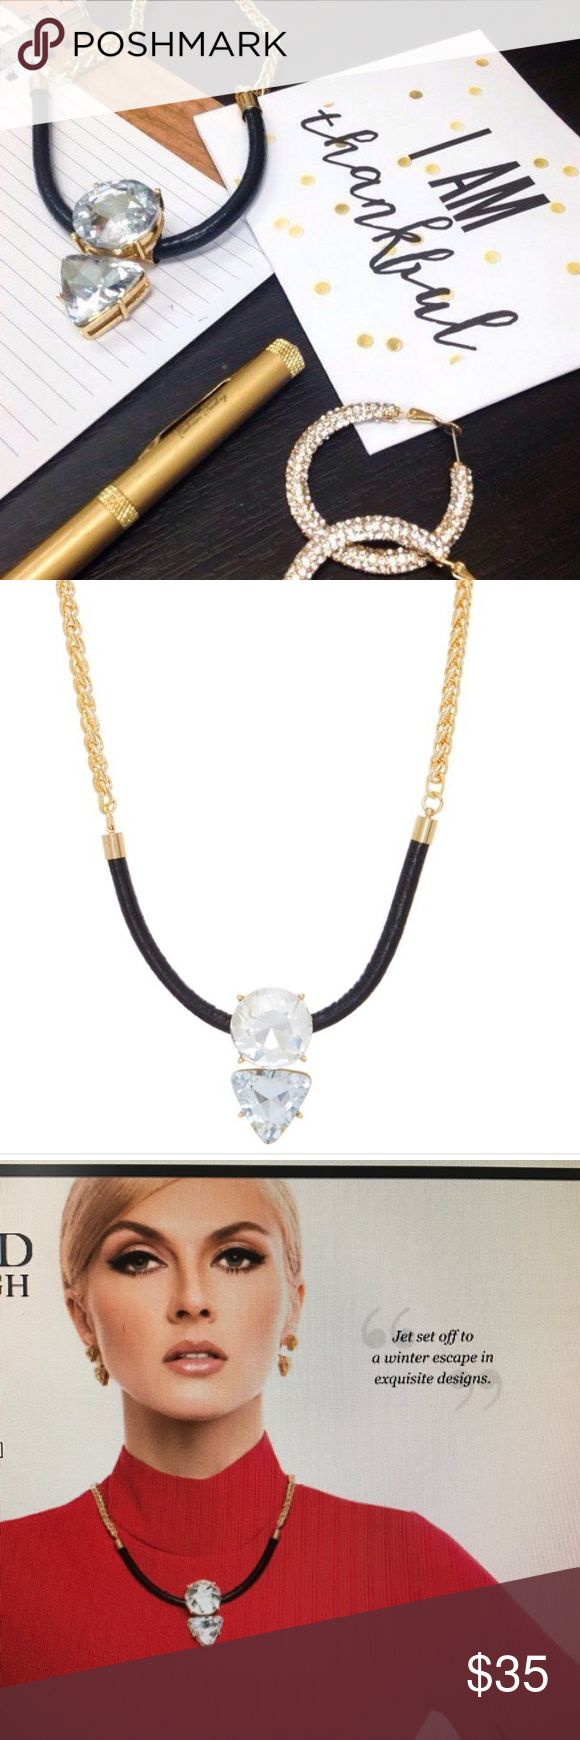 """Traci Lynn Necklace, 16-19"""" Beautiful fashion necklace! Comes in a gorgeous gift box! Traci Lynn Jewelry Necklaces"""